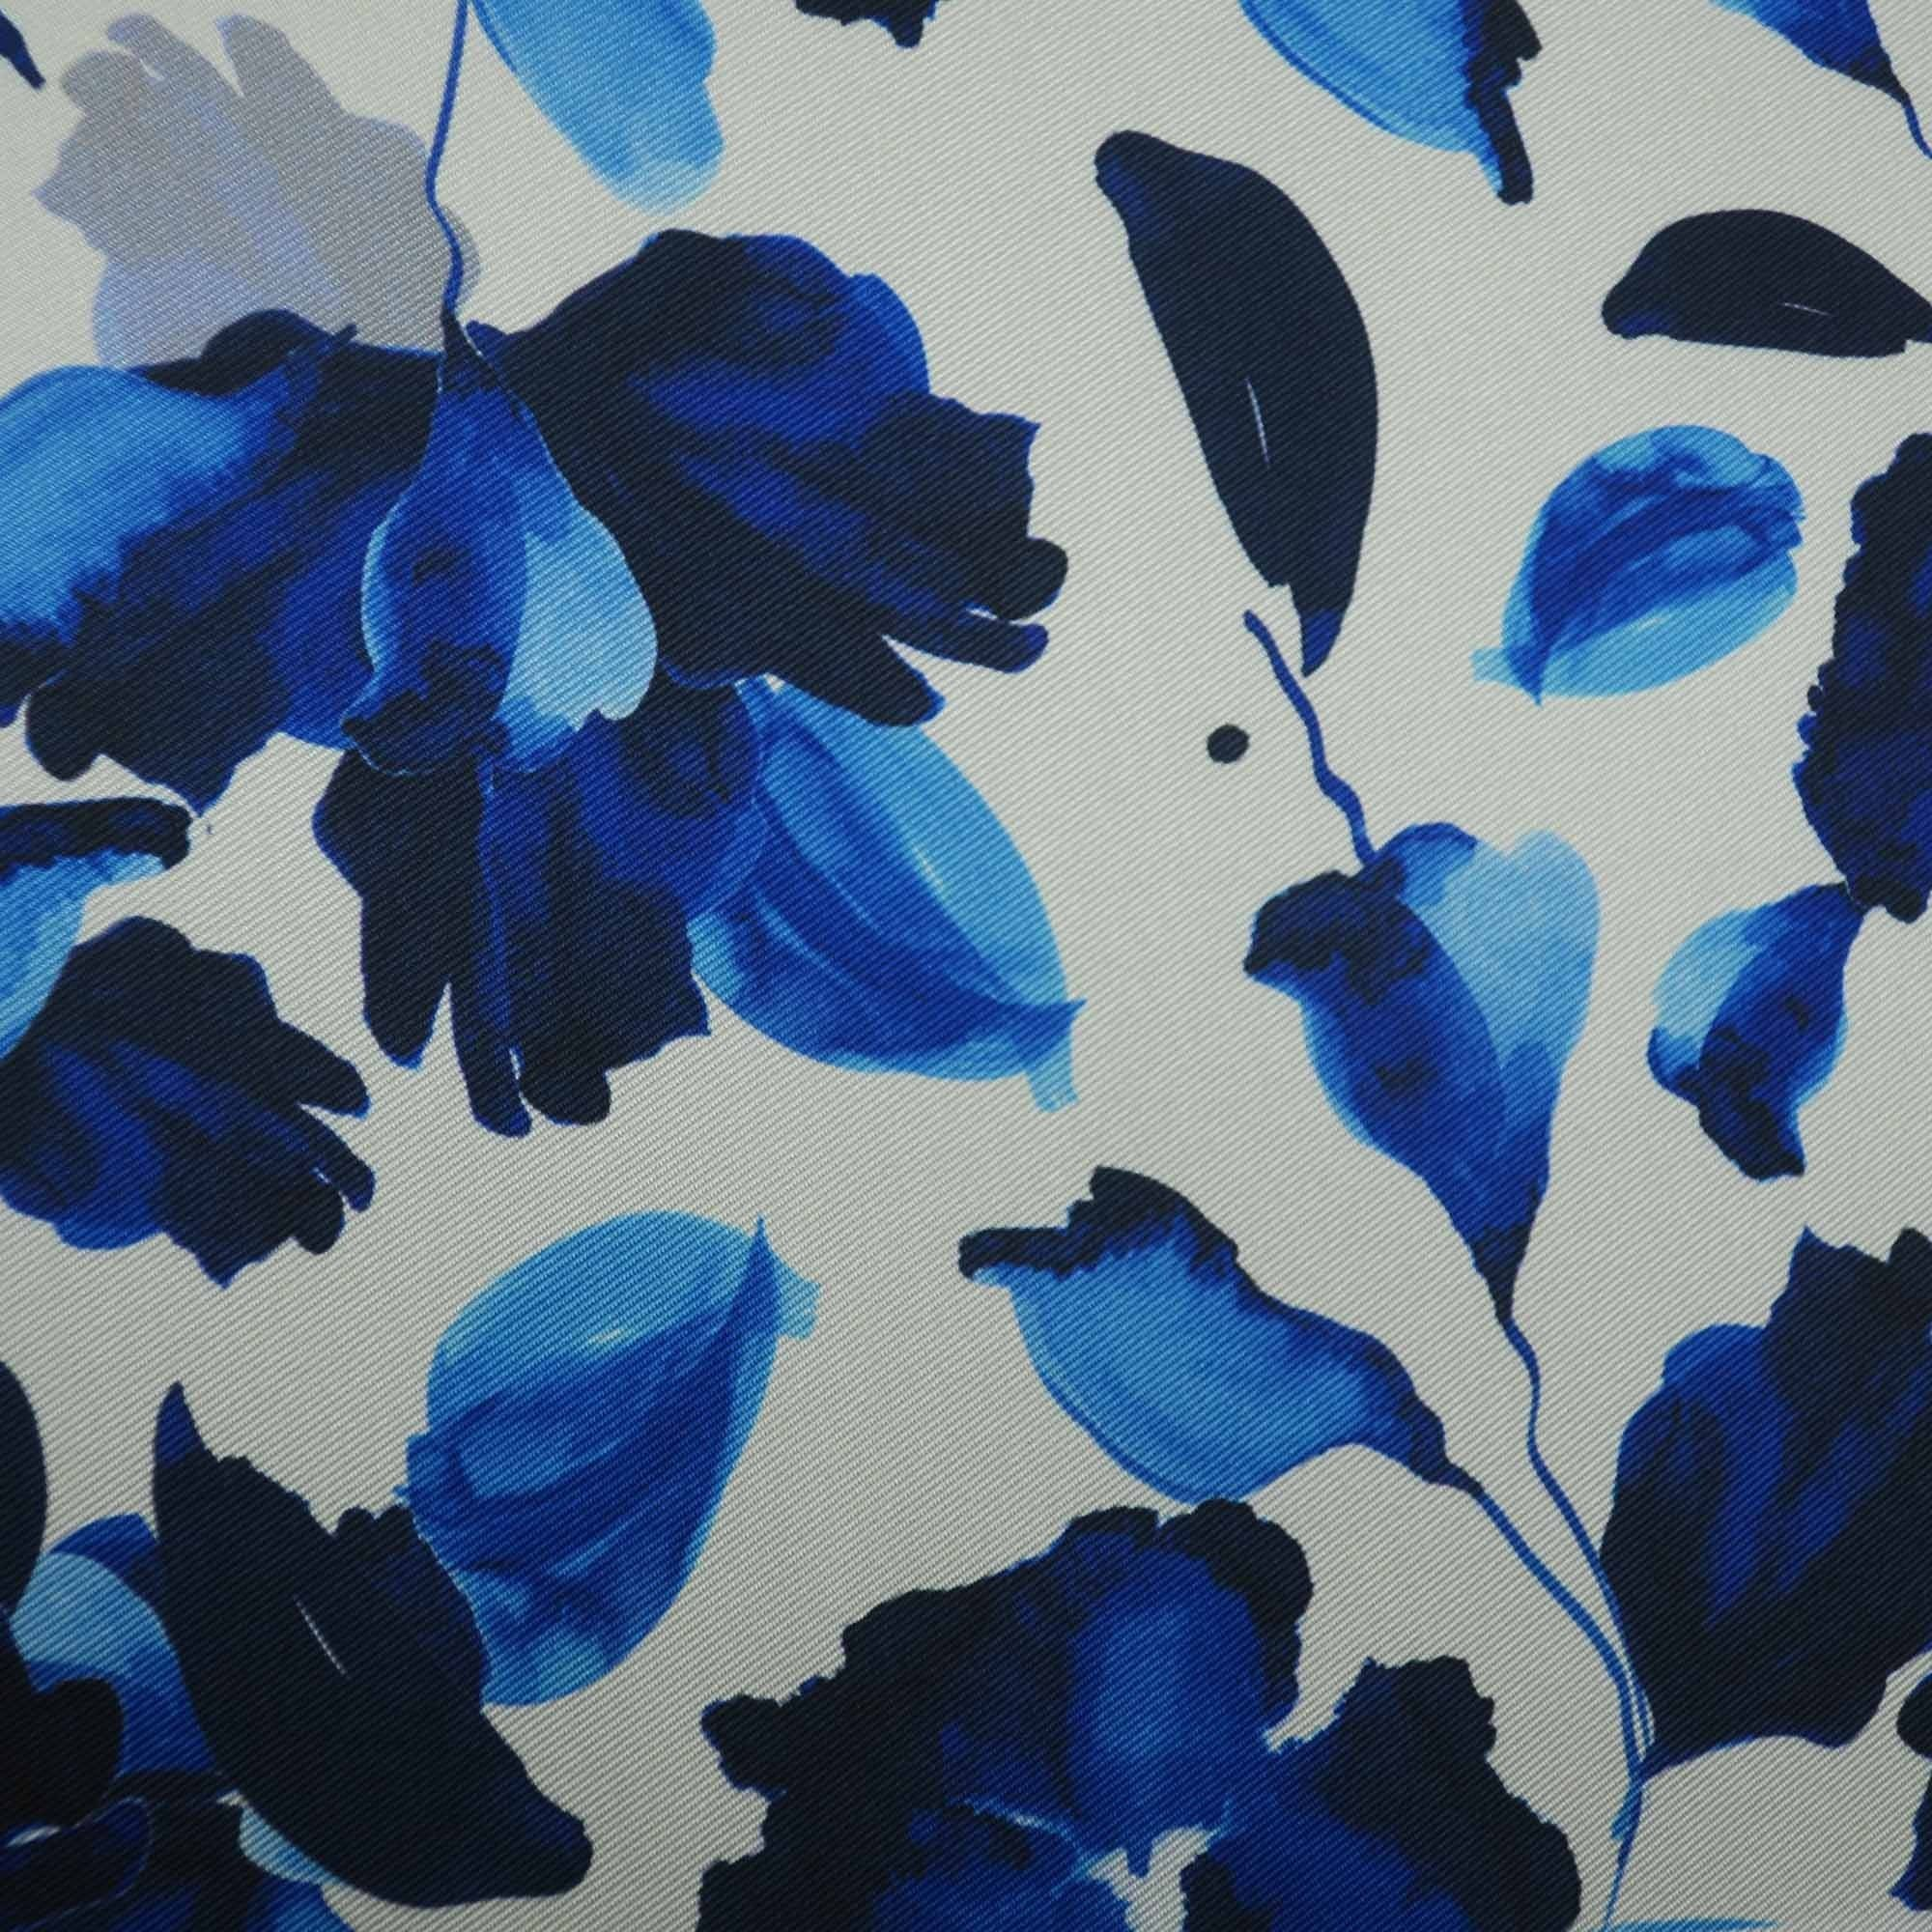 Royal Blue Flowers Hd Wallpapers Top Free Royal Blue